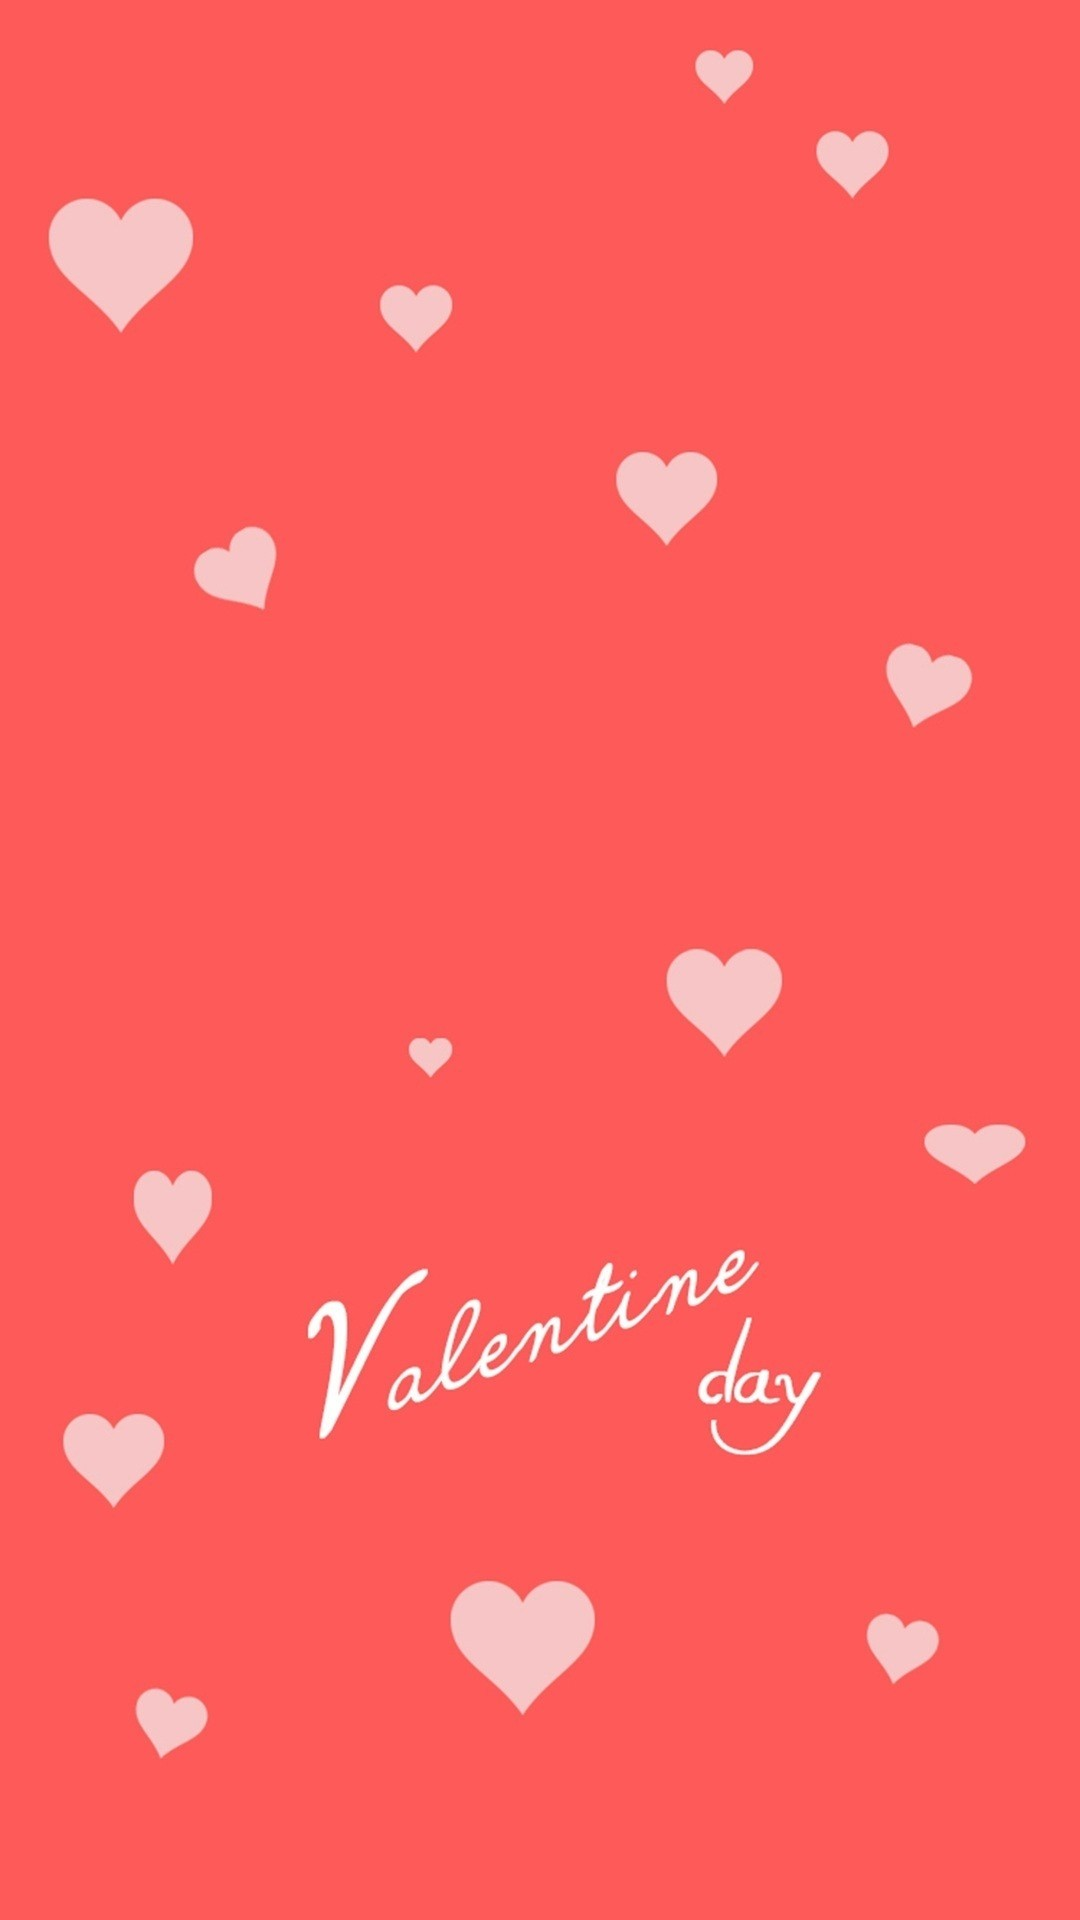 Valentines iphone home screen wallpaper